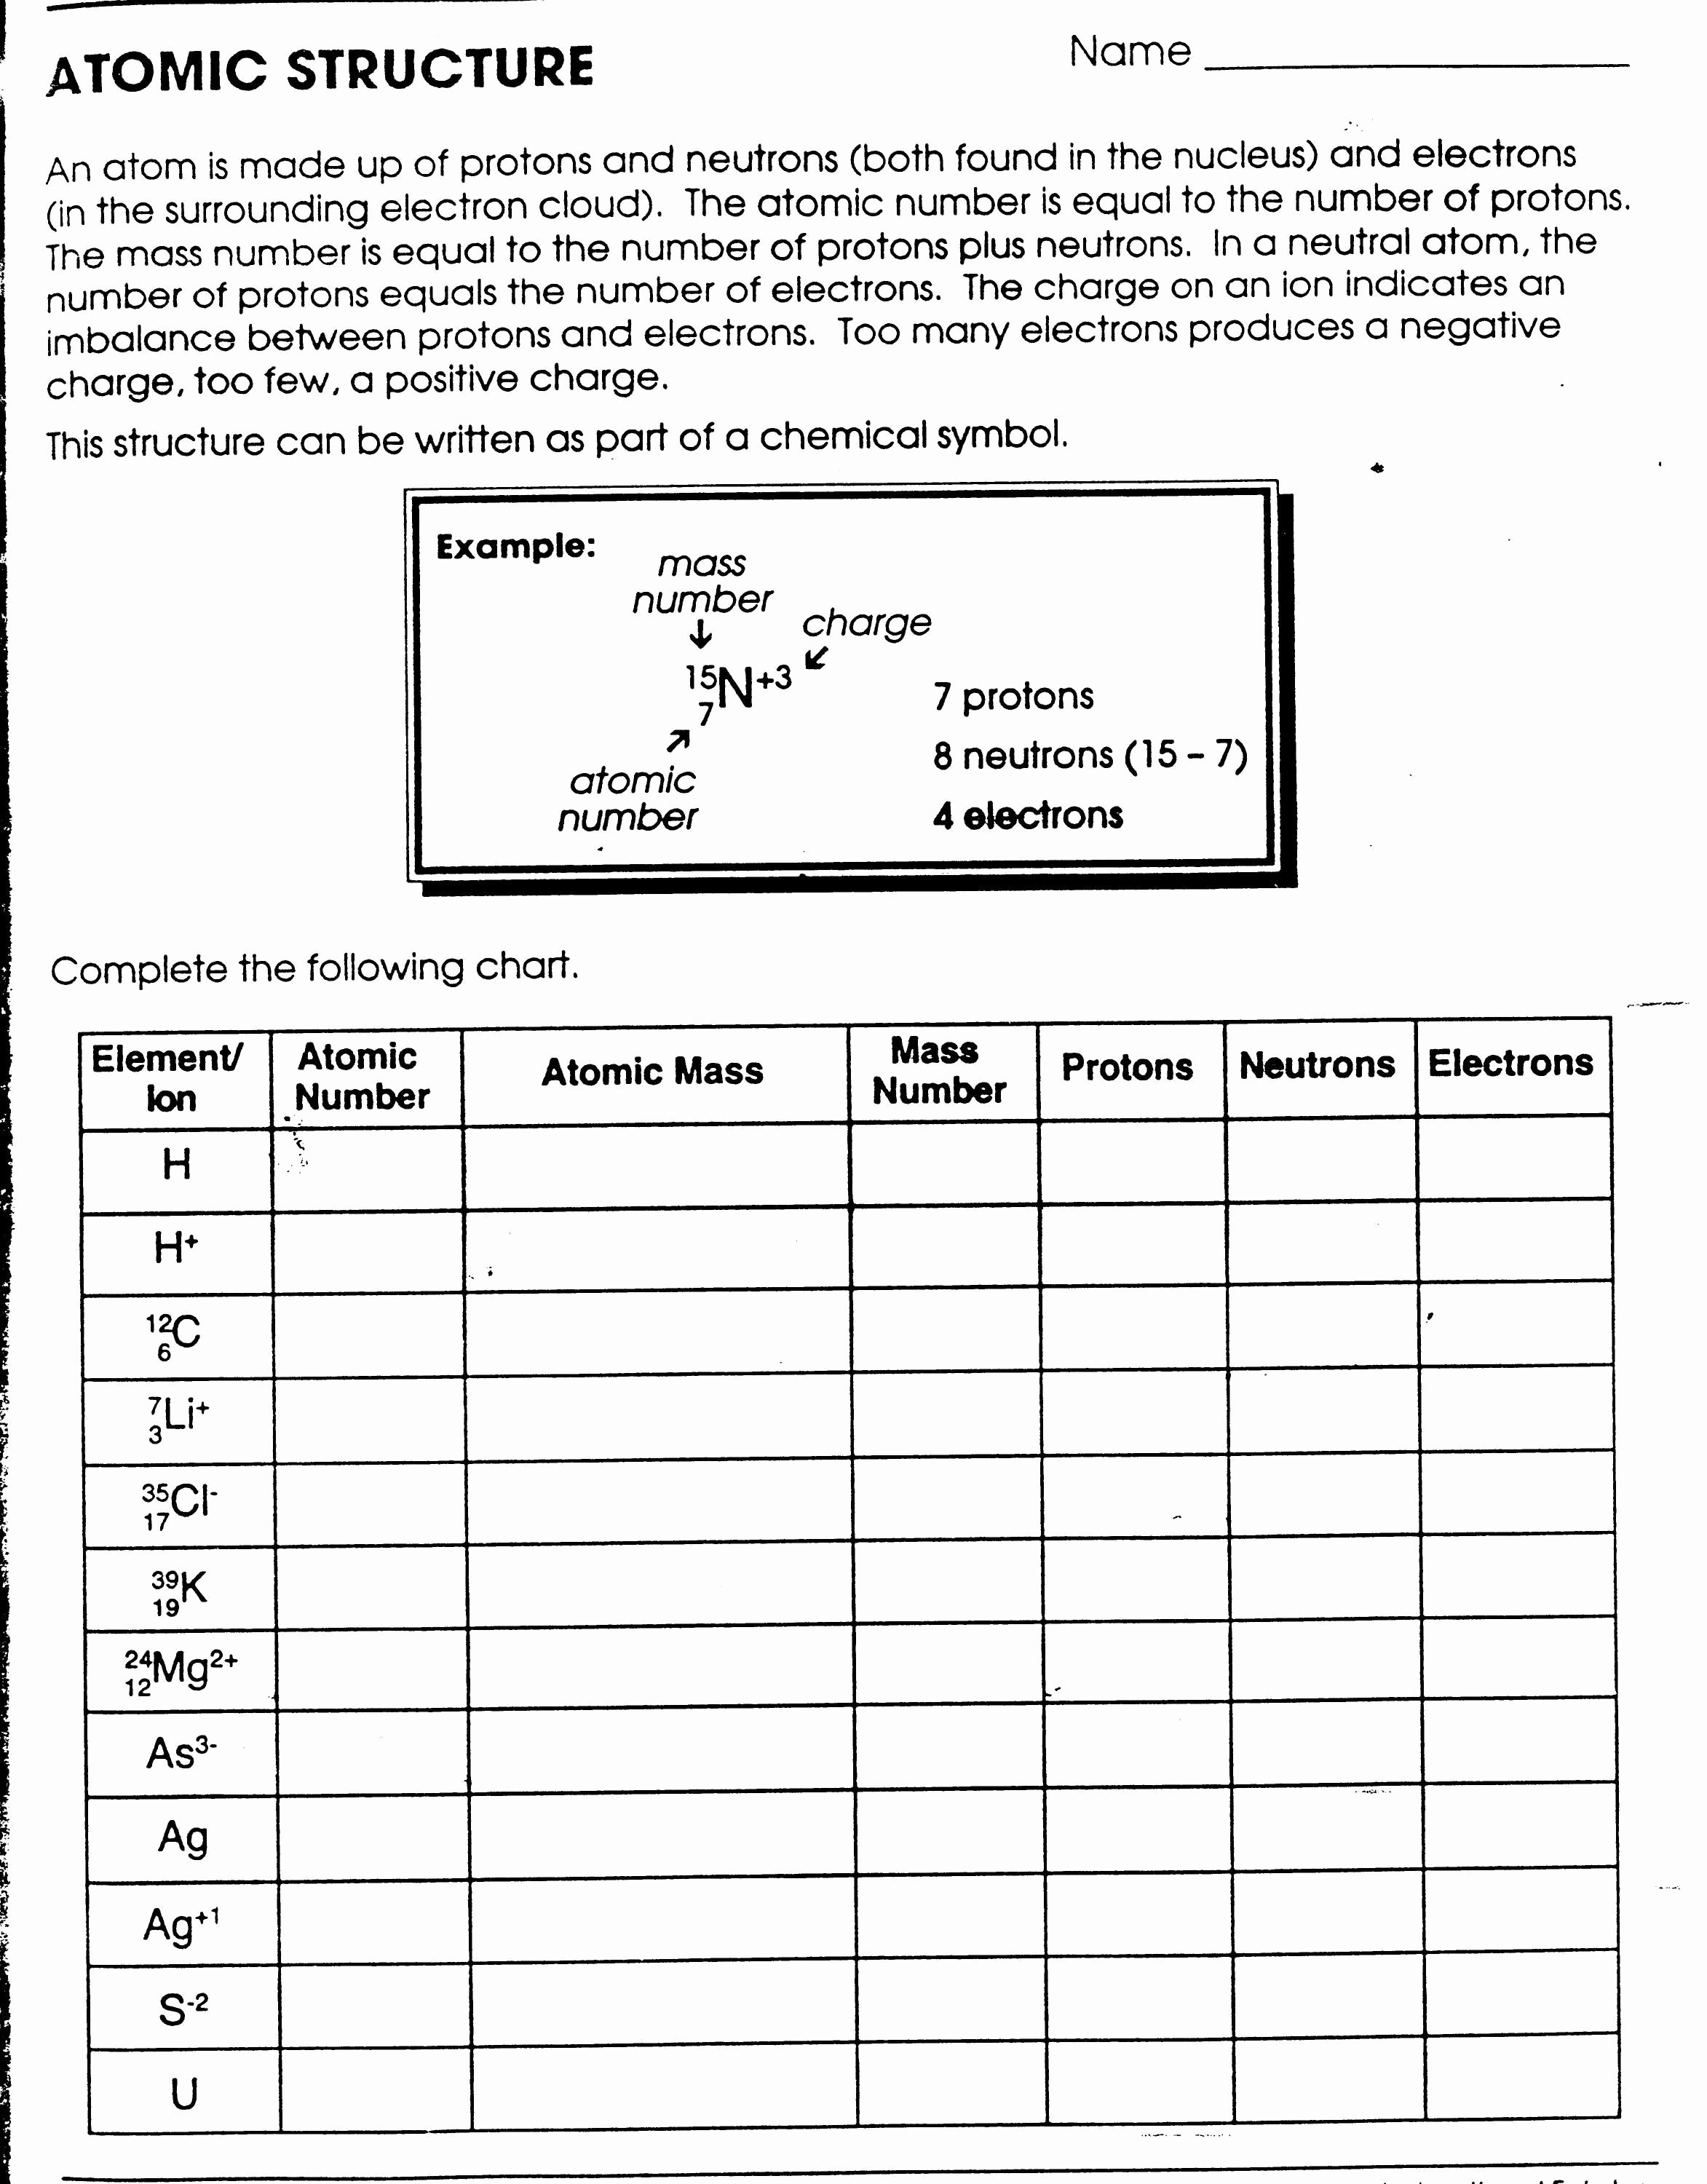 Worksheet atomic Structure Answers Awesome Skills Worksheet Concept Review Section the Development